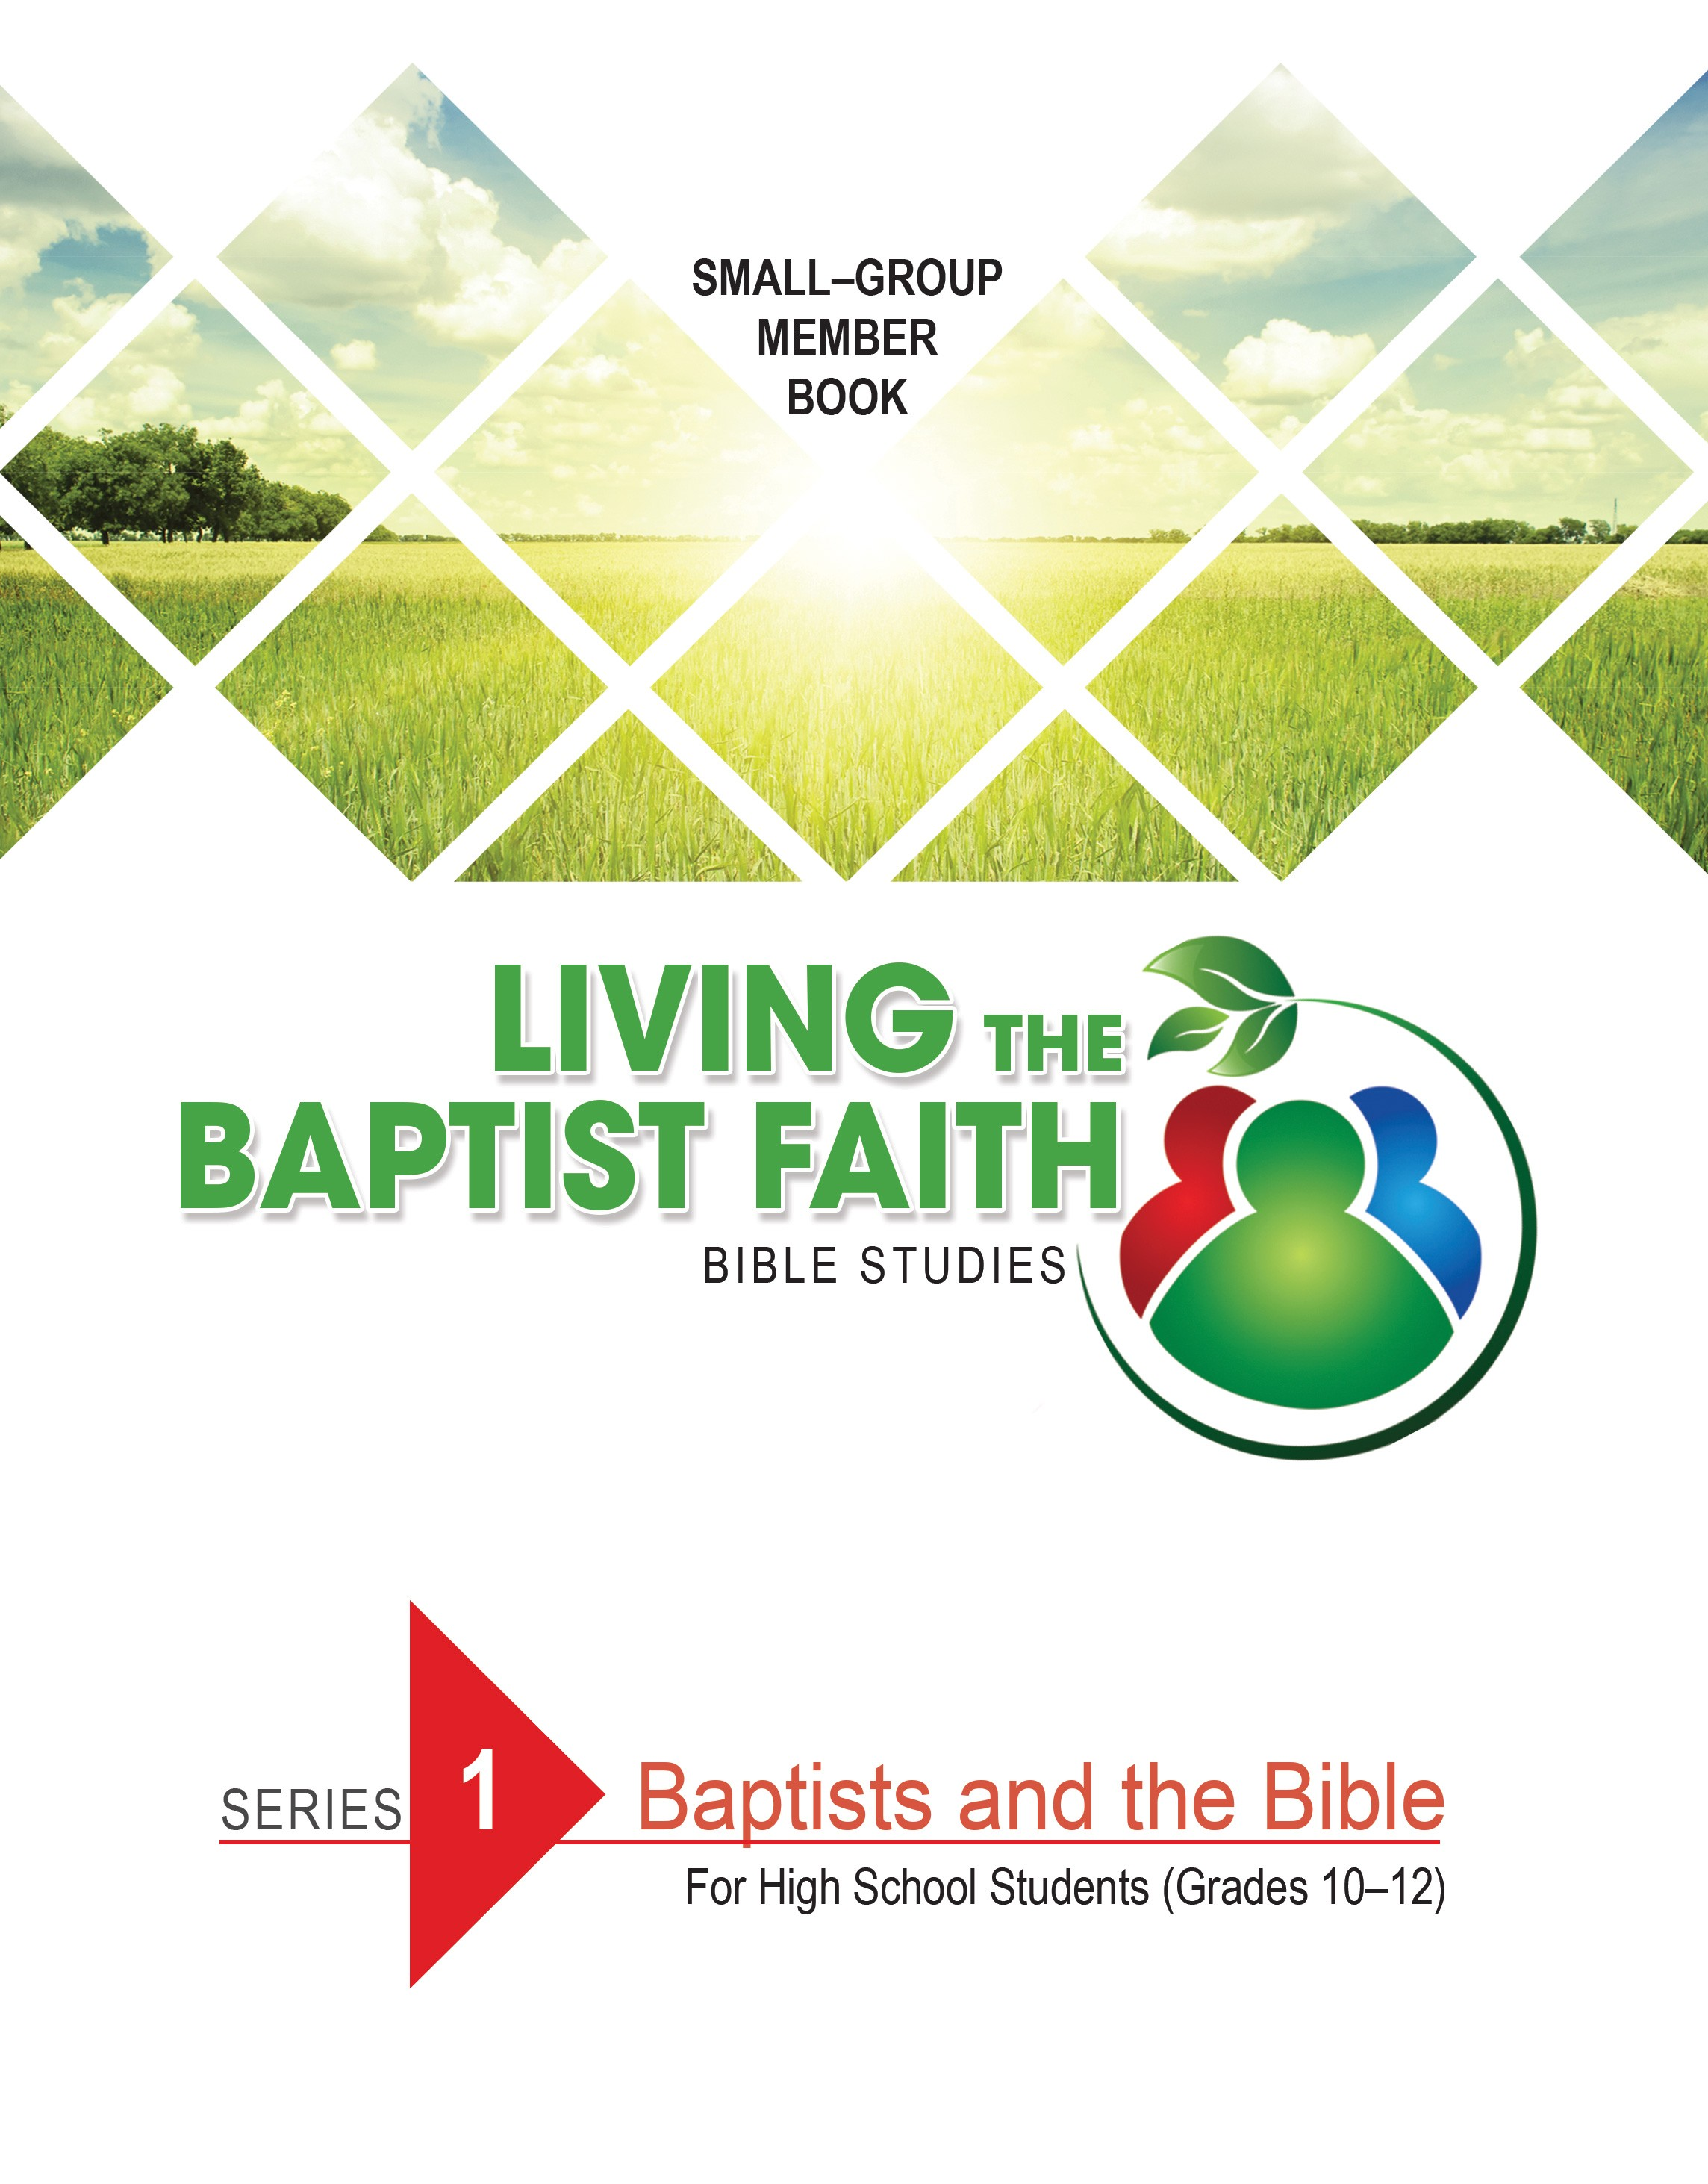 Series 1: Baptists and the Bible (for High School Students)